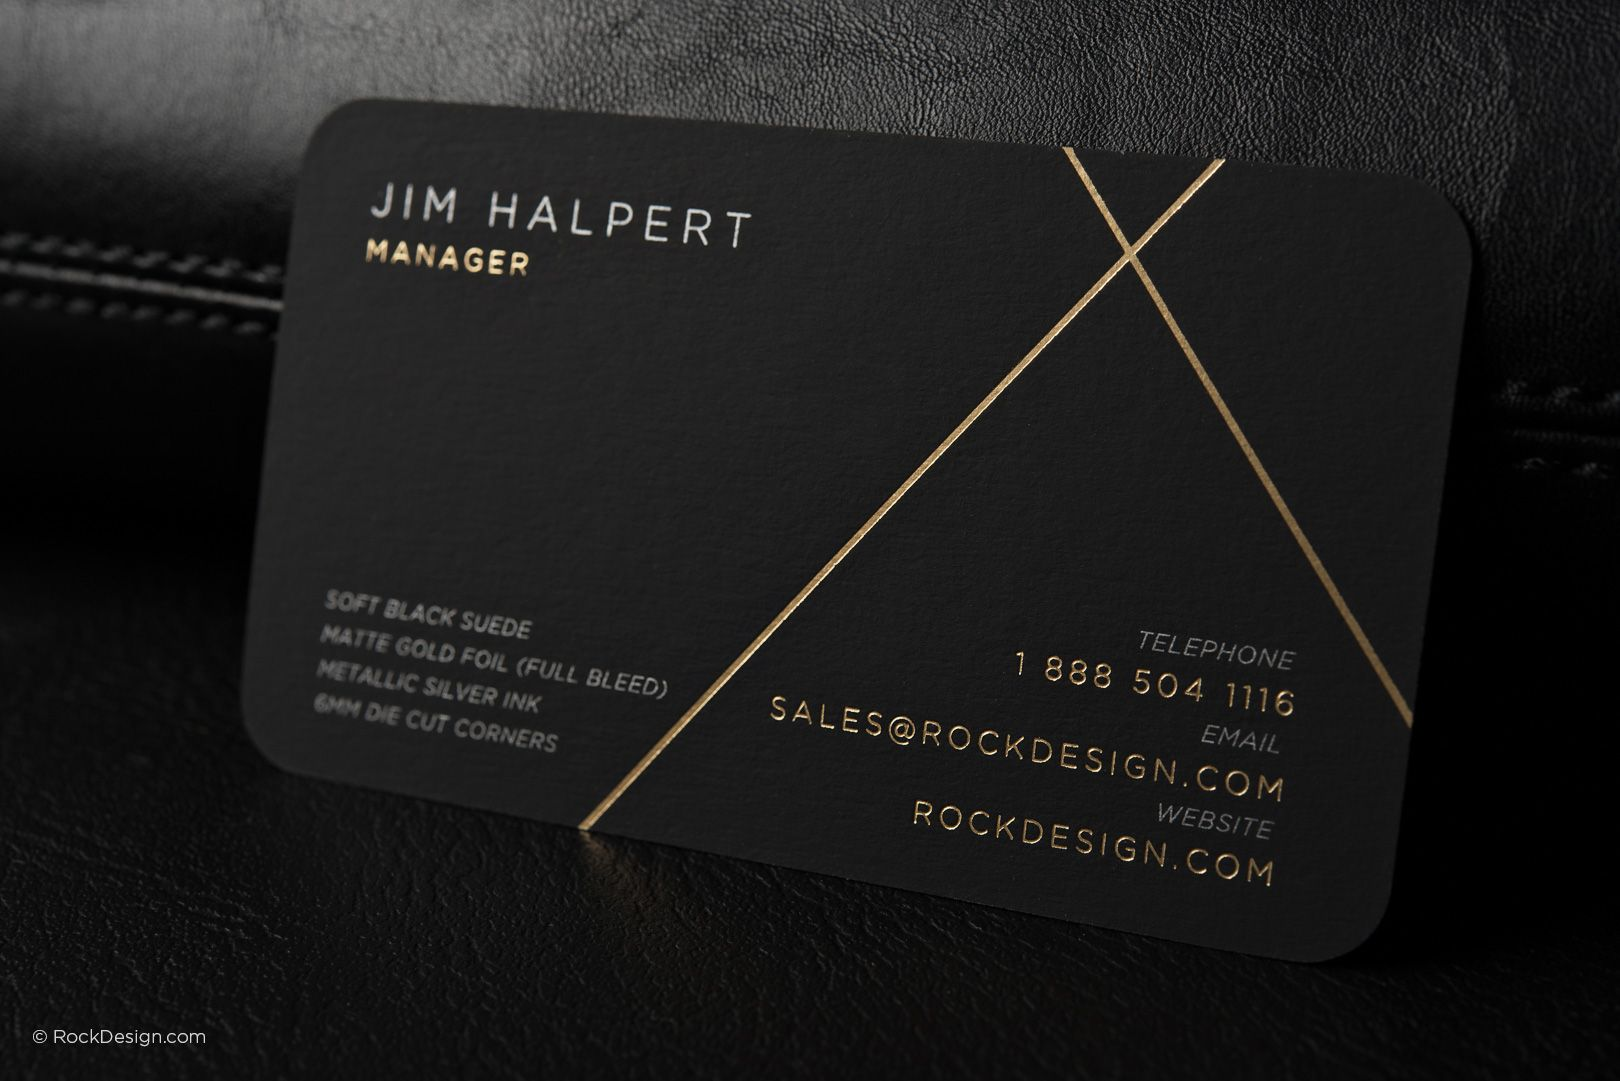 Luxury Modern Black Suede Business Card With Metallic Ink And Gold Foil Rock Design R Printing Business Cards Business Cards Creative Luxury Business Cards